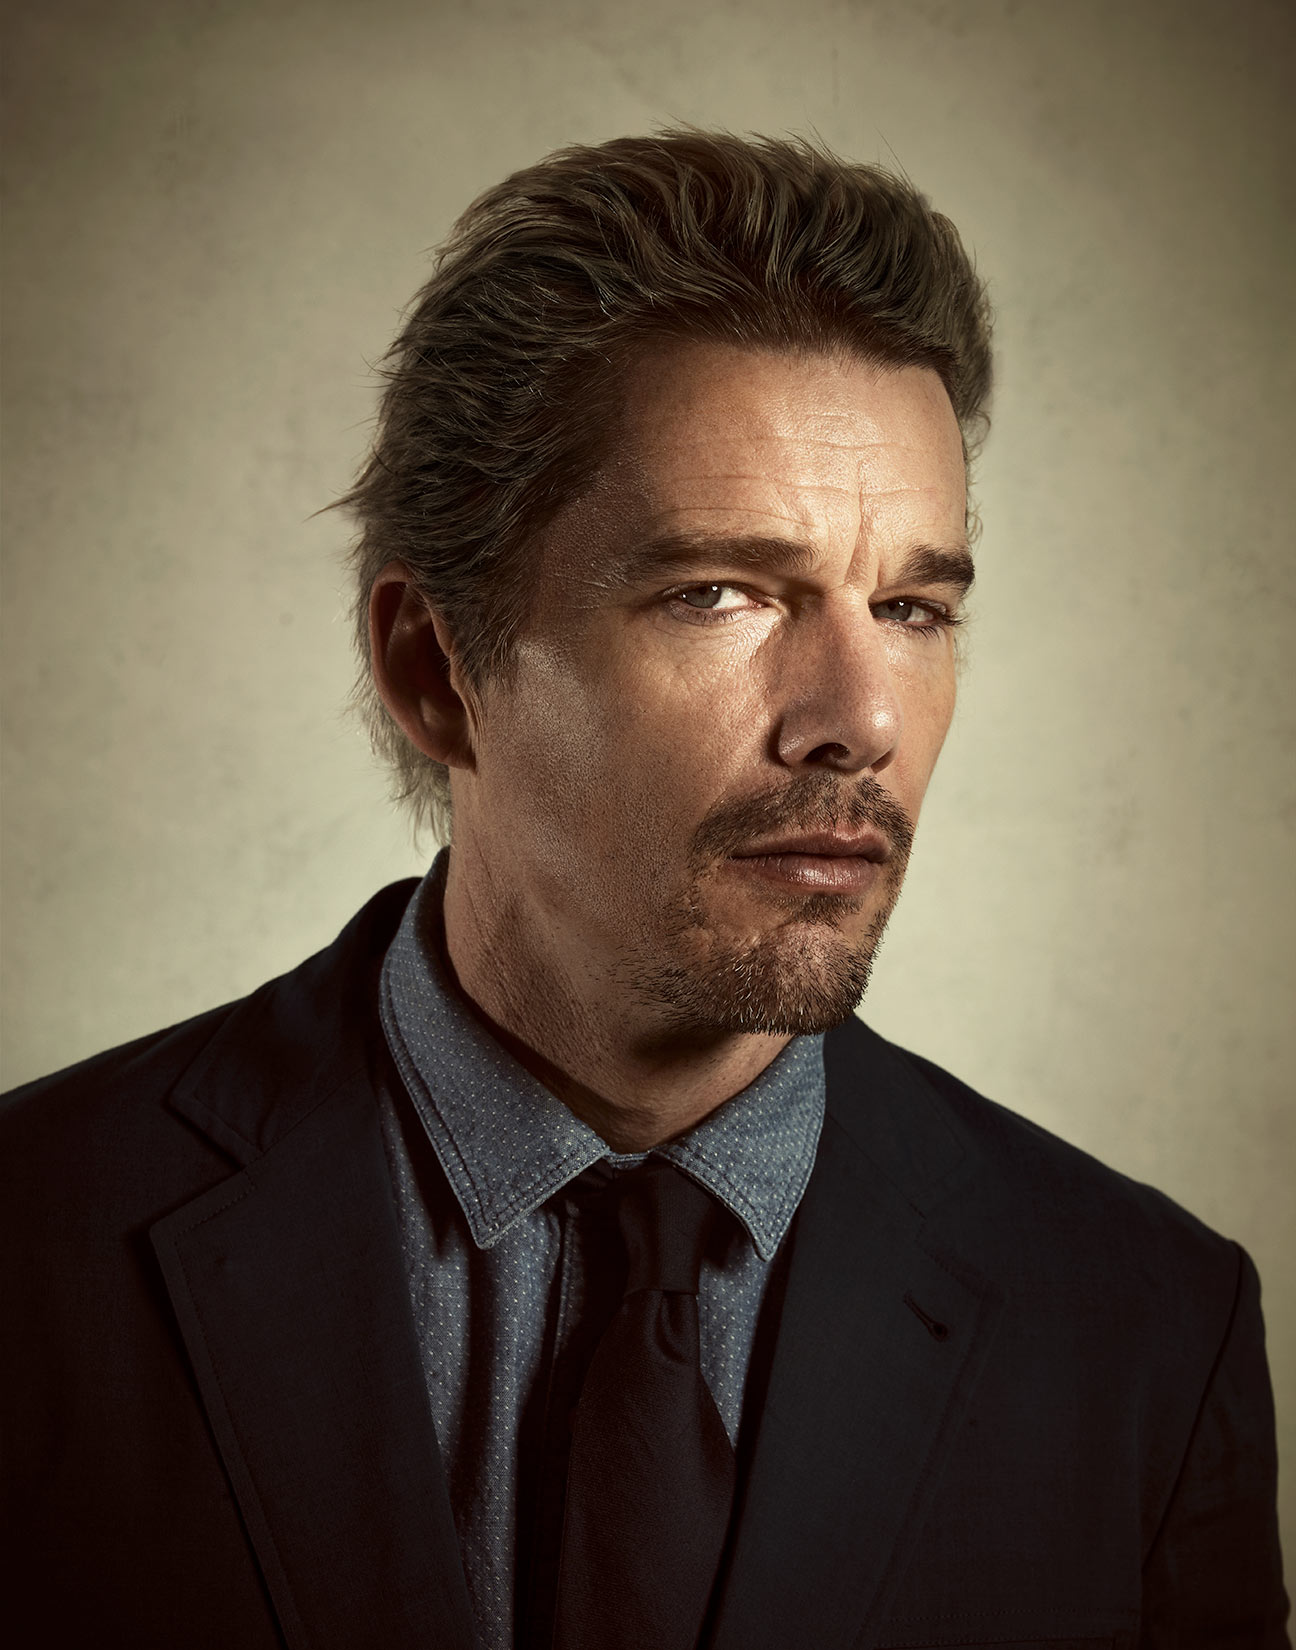 Ethan-Hawke-by-Robert-Ascroft-03-DUP.jpg